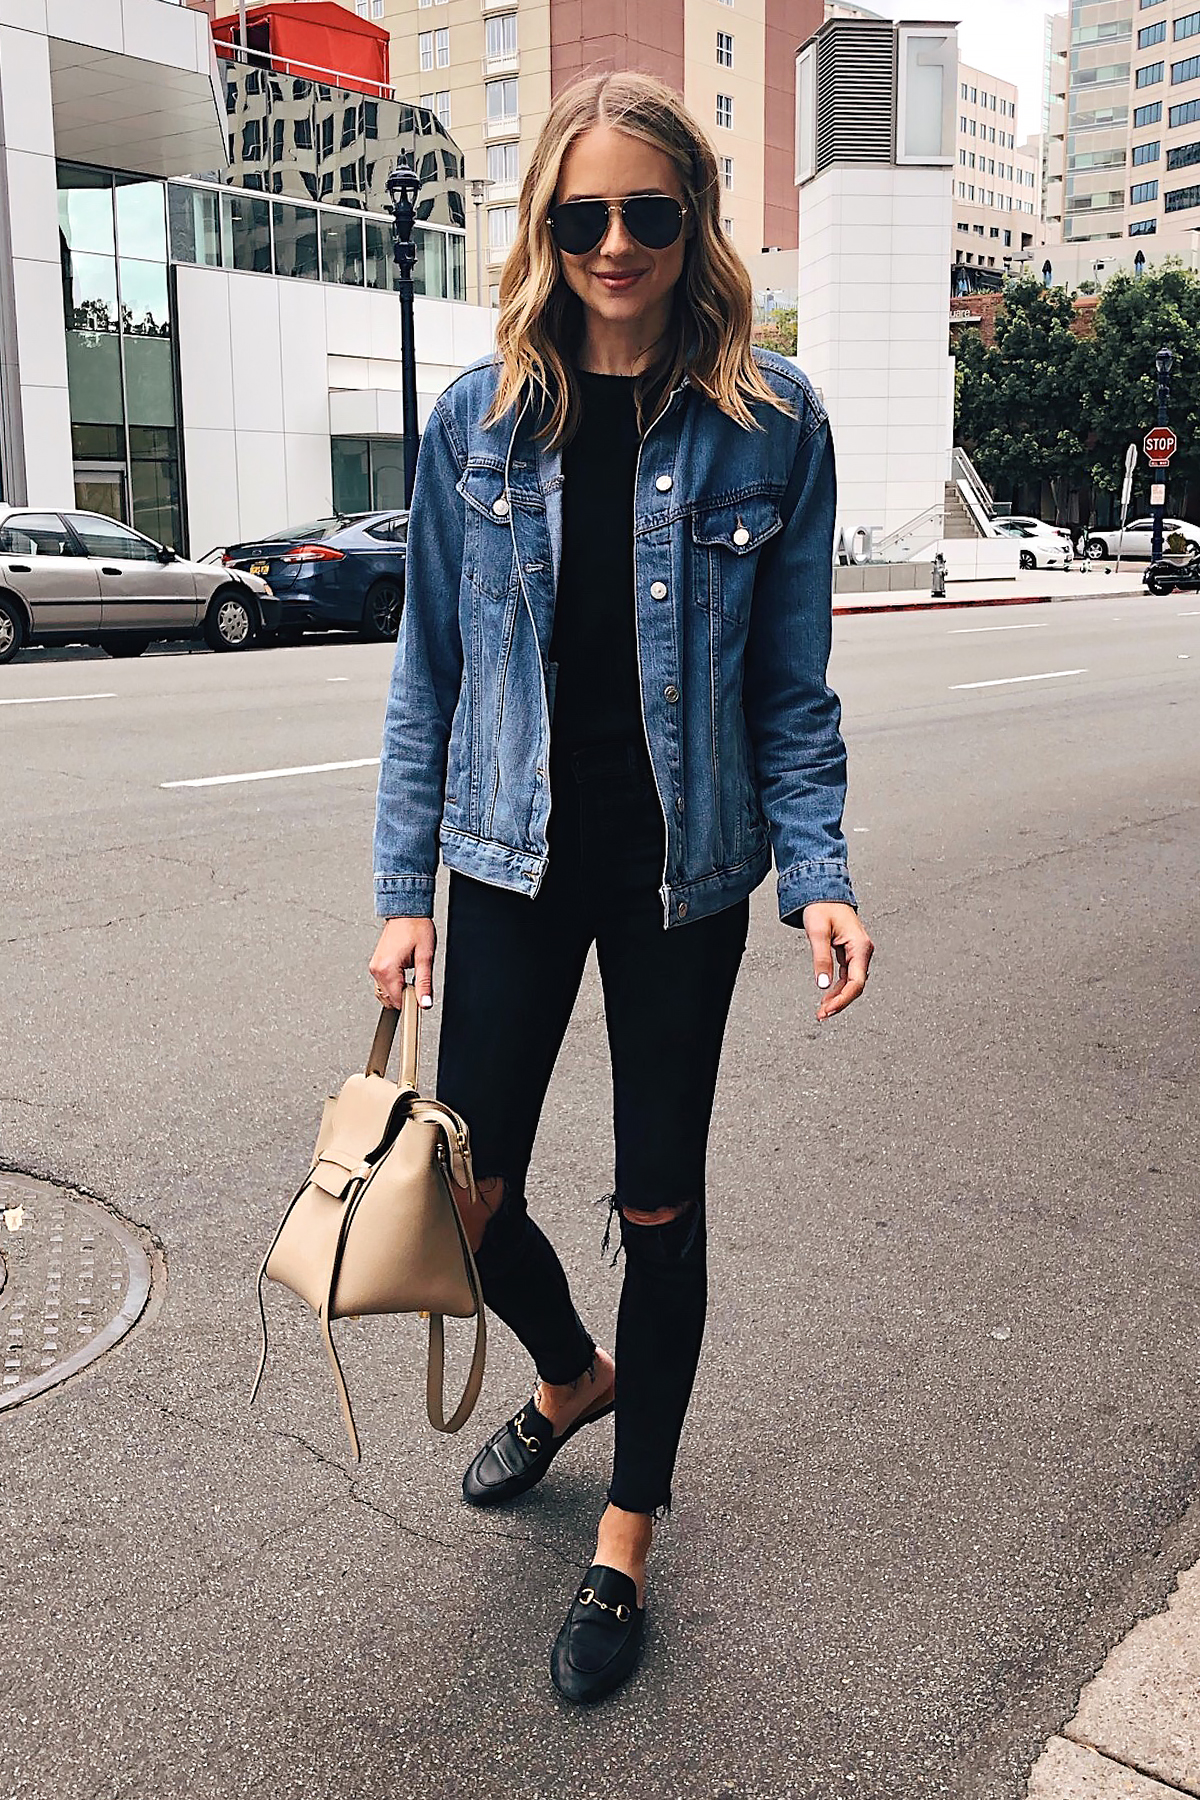 Fashion Jackson Capsule Wardrobe Wearing Topshop Oversized Denim Jacket Black Sweater Madewell Black Skinny Jeans Gucci Black Mules Celine Mini Belt Bag